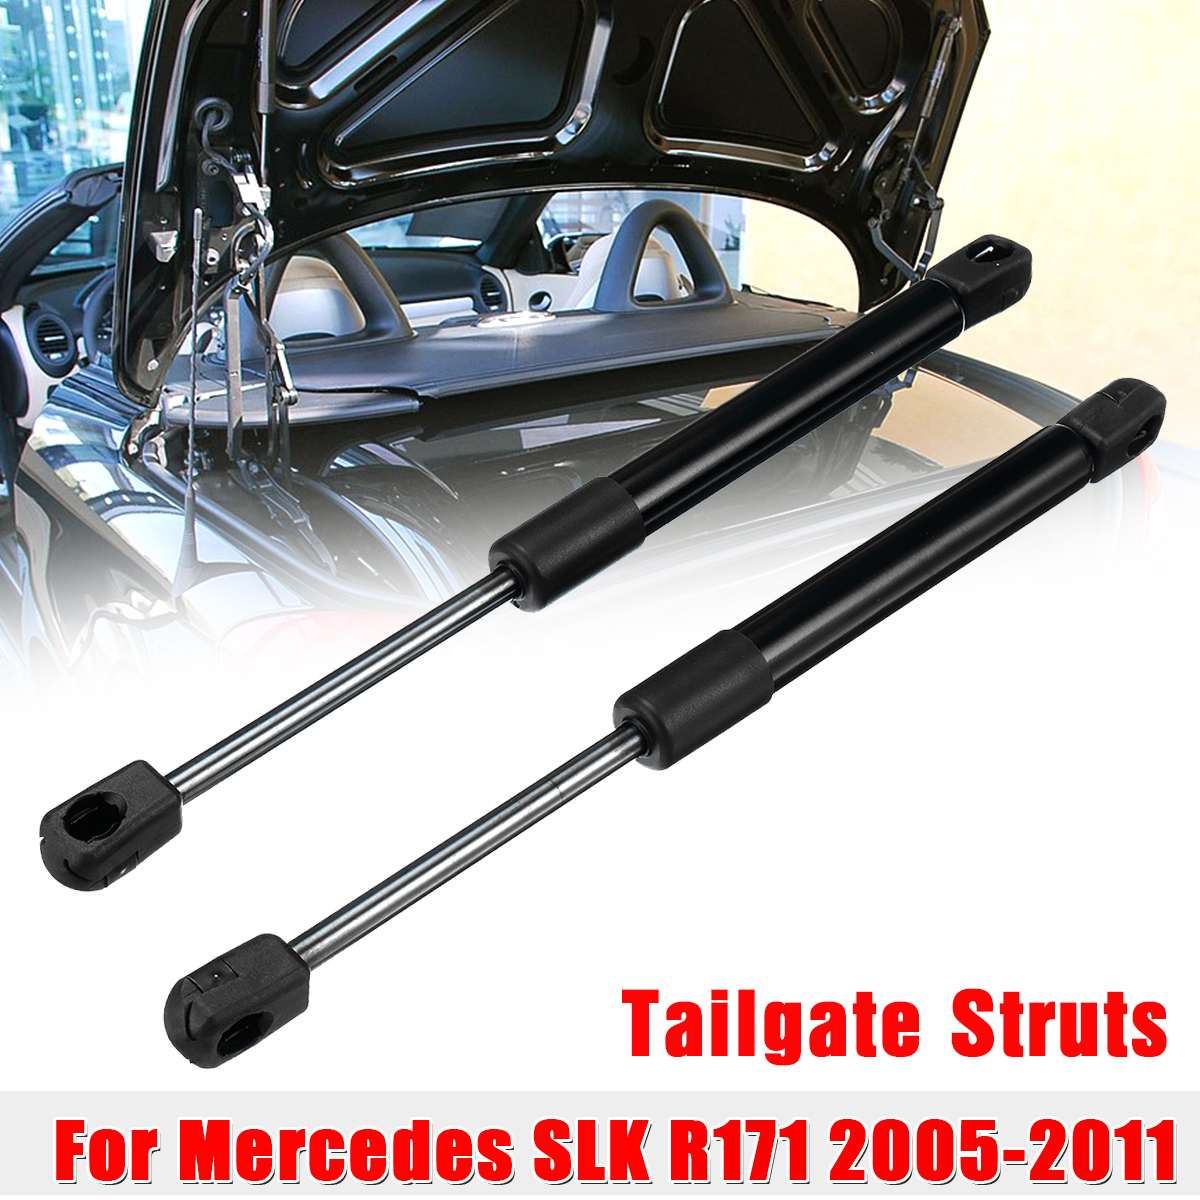 2X Rear Trunk Tailgate Boot Gas Spring Shock Lift Strut Struts Support Bar 1717500036 For Mercedes For Benz SLK R171 2005 - 2011